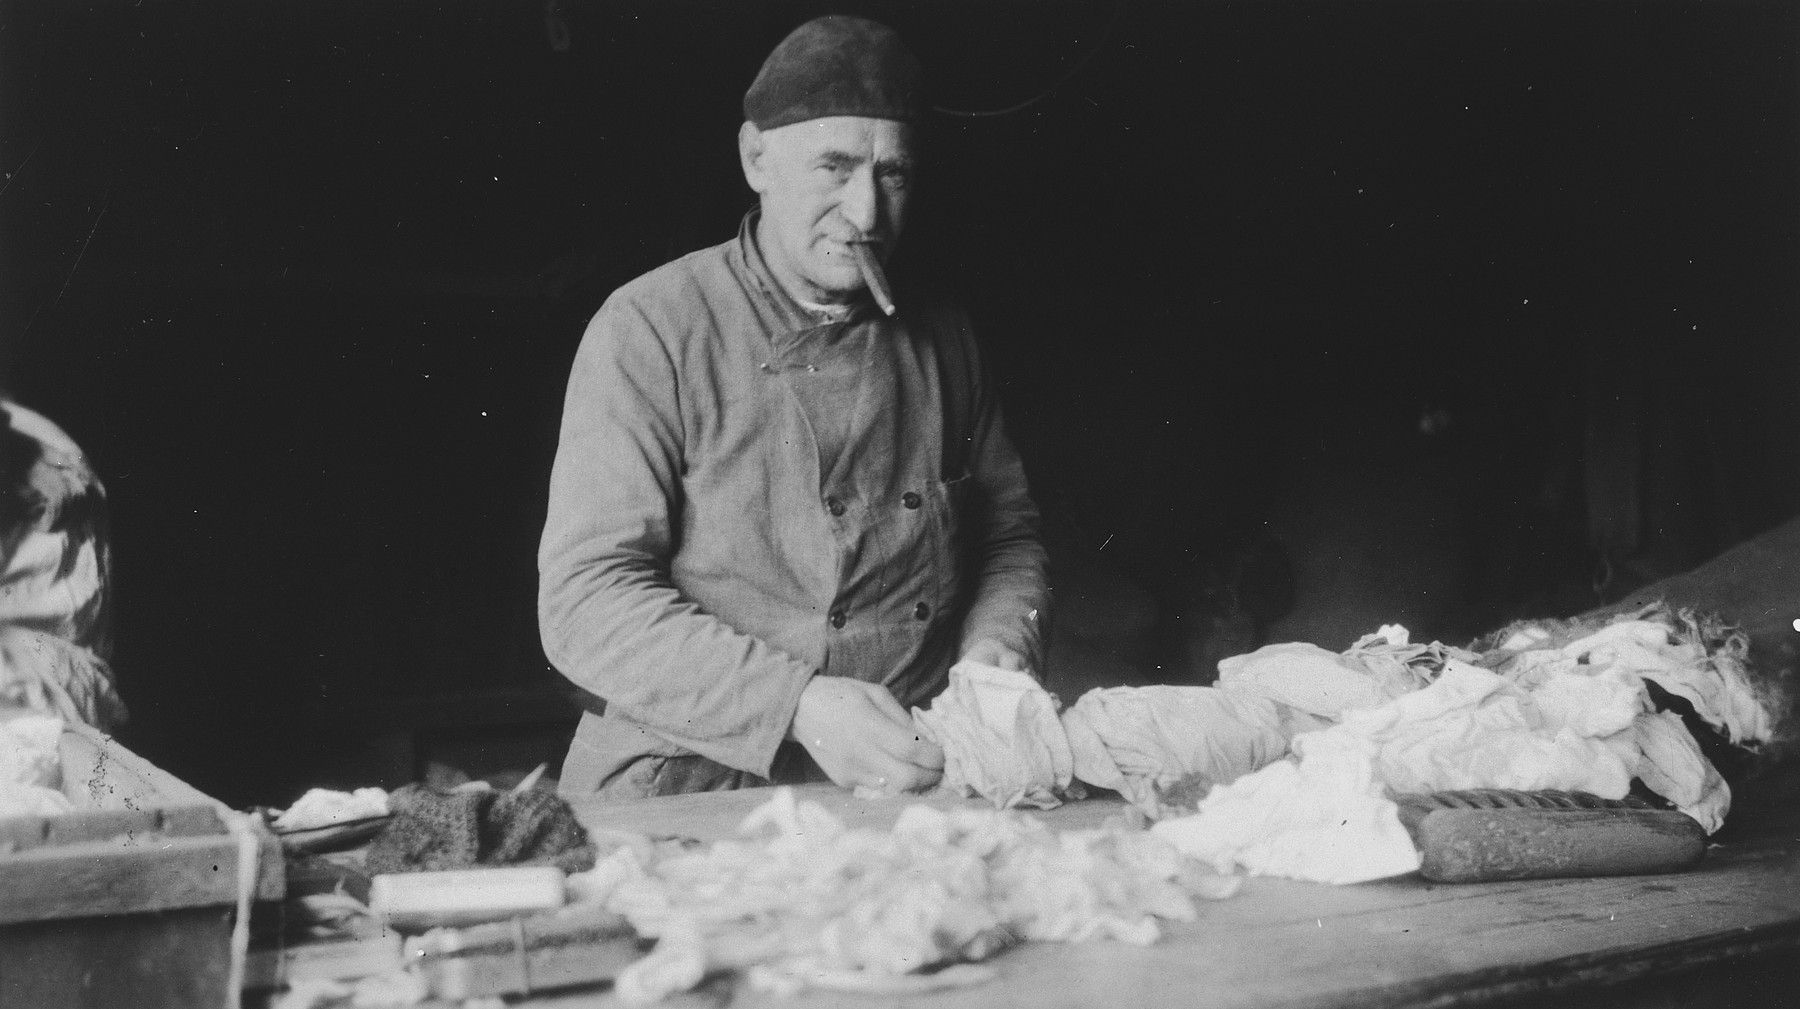 An elderly Jewish man sorts rags in a warehouse.    Pictured is Simon de Zwarte, grandfather of the donor.  He was rounded-up in 1943 and subsequently perished.  [The date is unconfirmed and this may be a prewar photograph.]